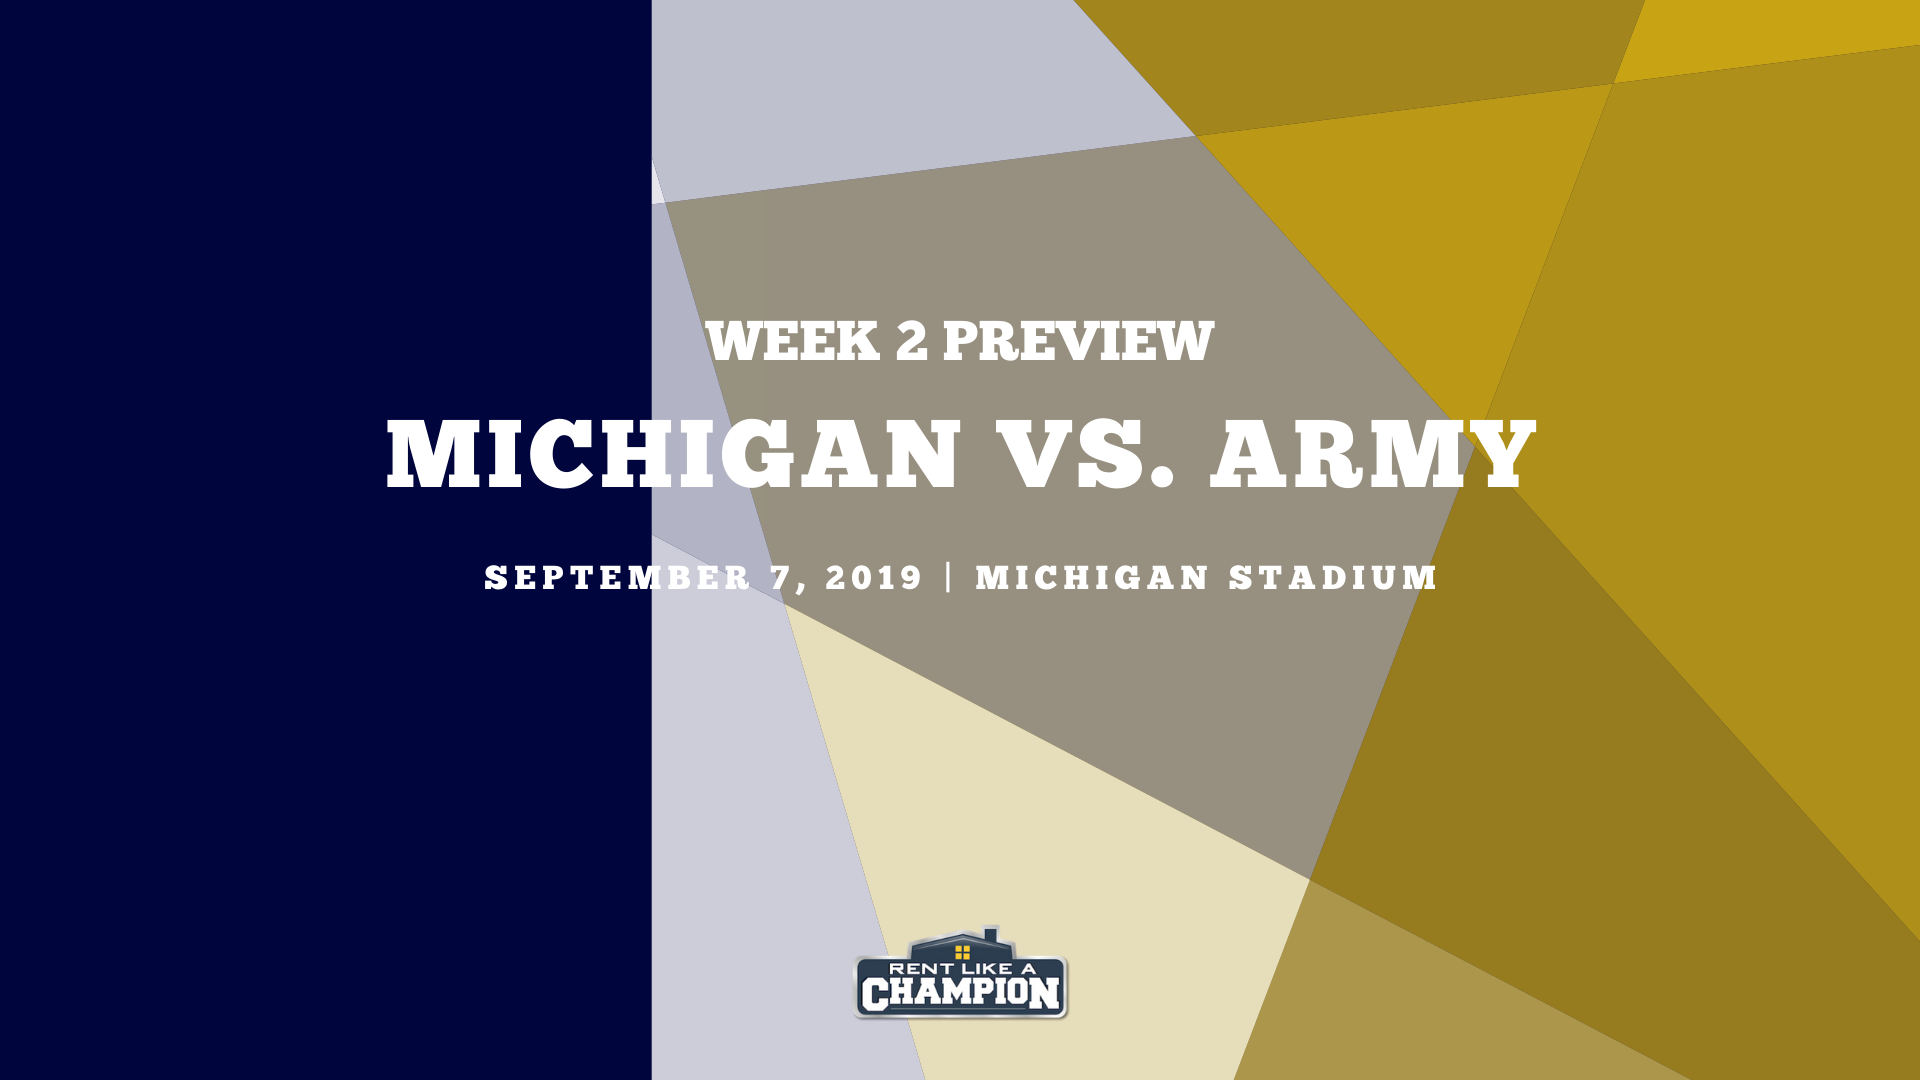 Michigan Game Preview Template (1)